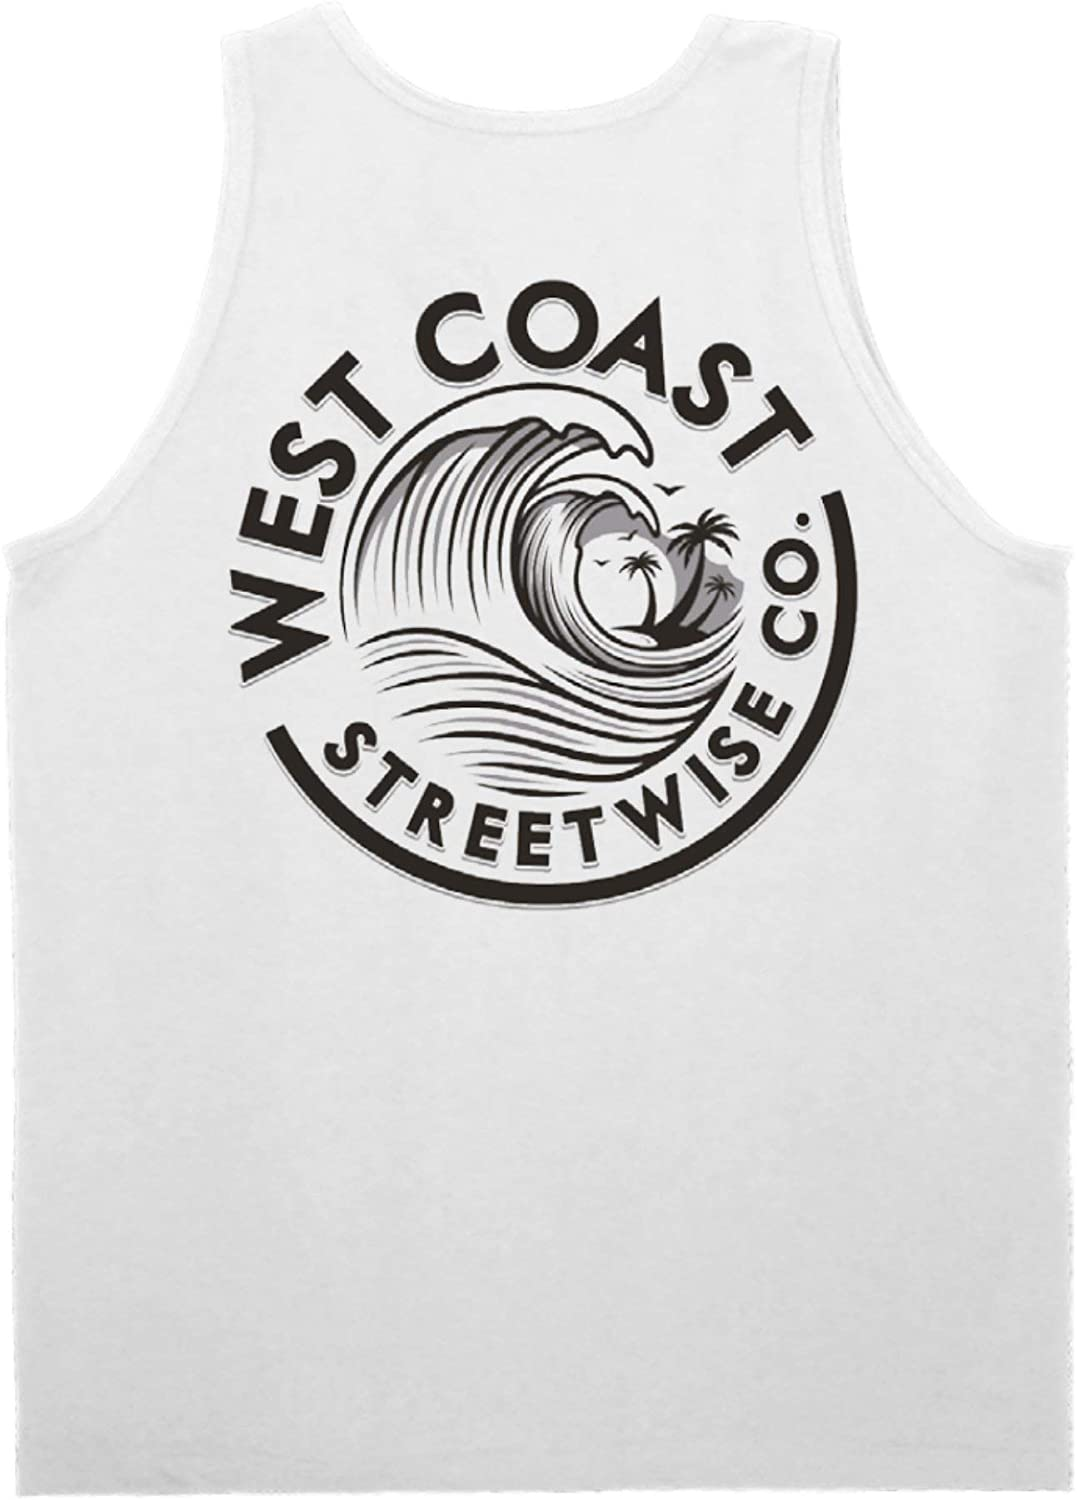 Streetwise Wave Coast Tank Top (White)